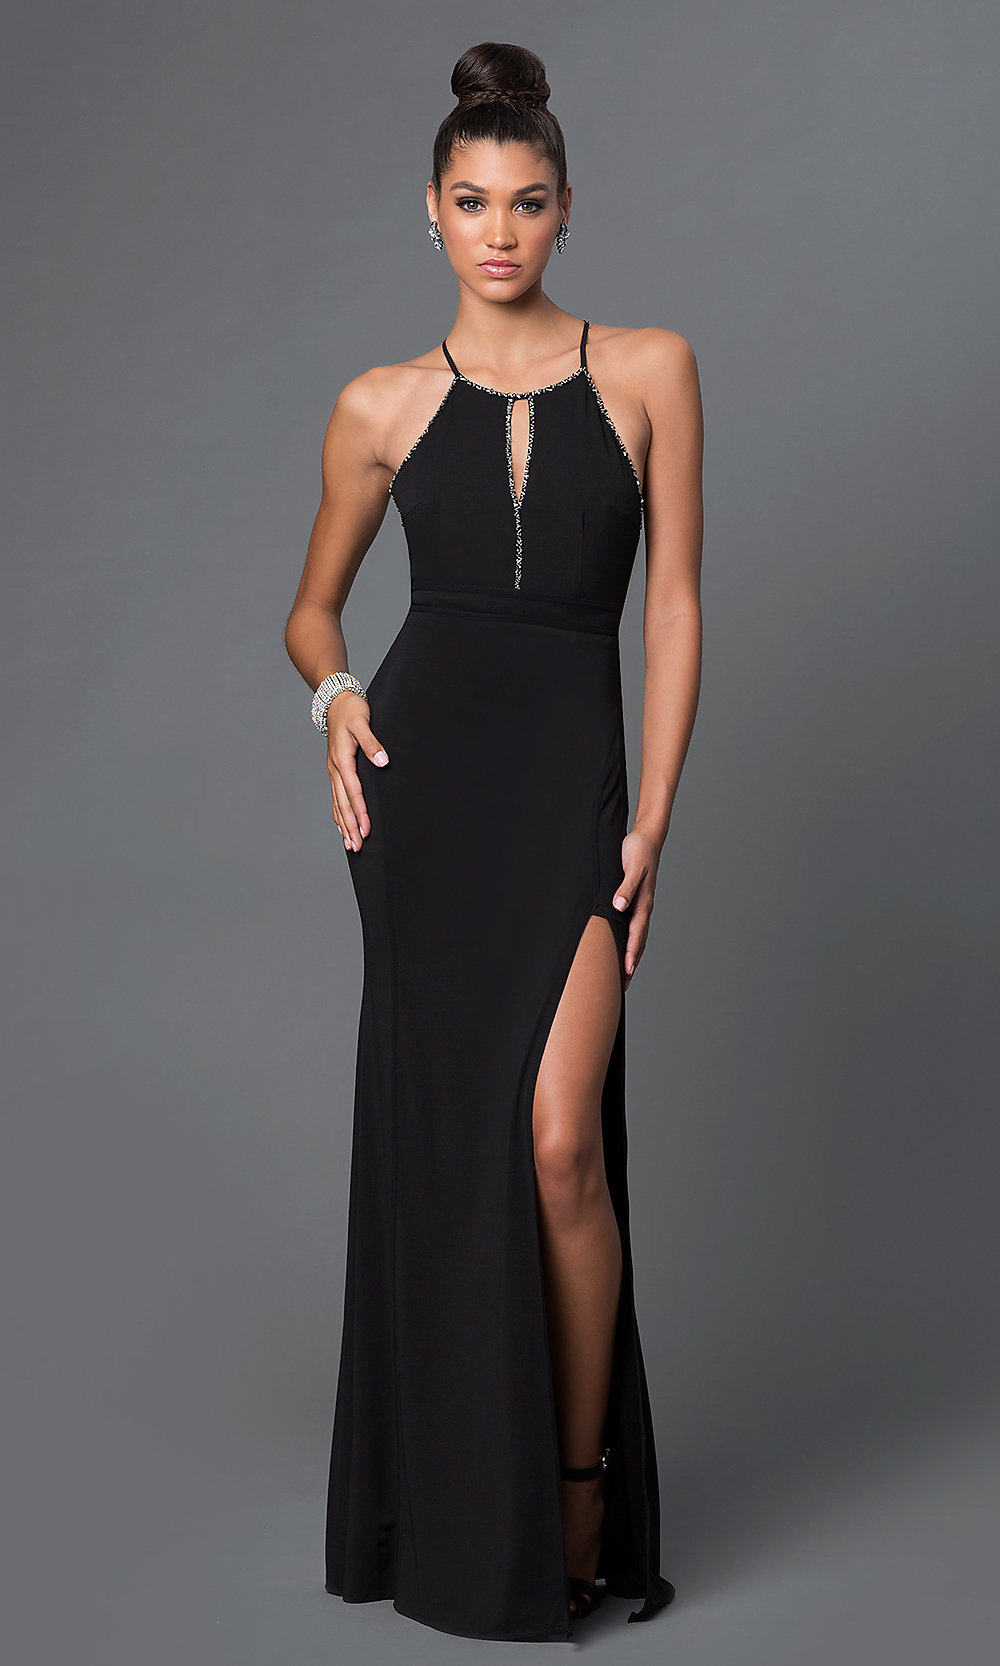 Low Back- Backless- Open Back Evening Dresses